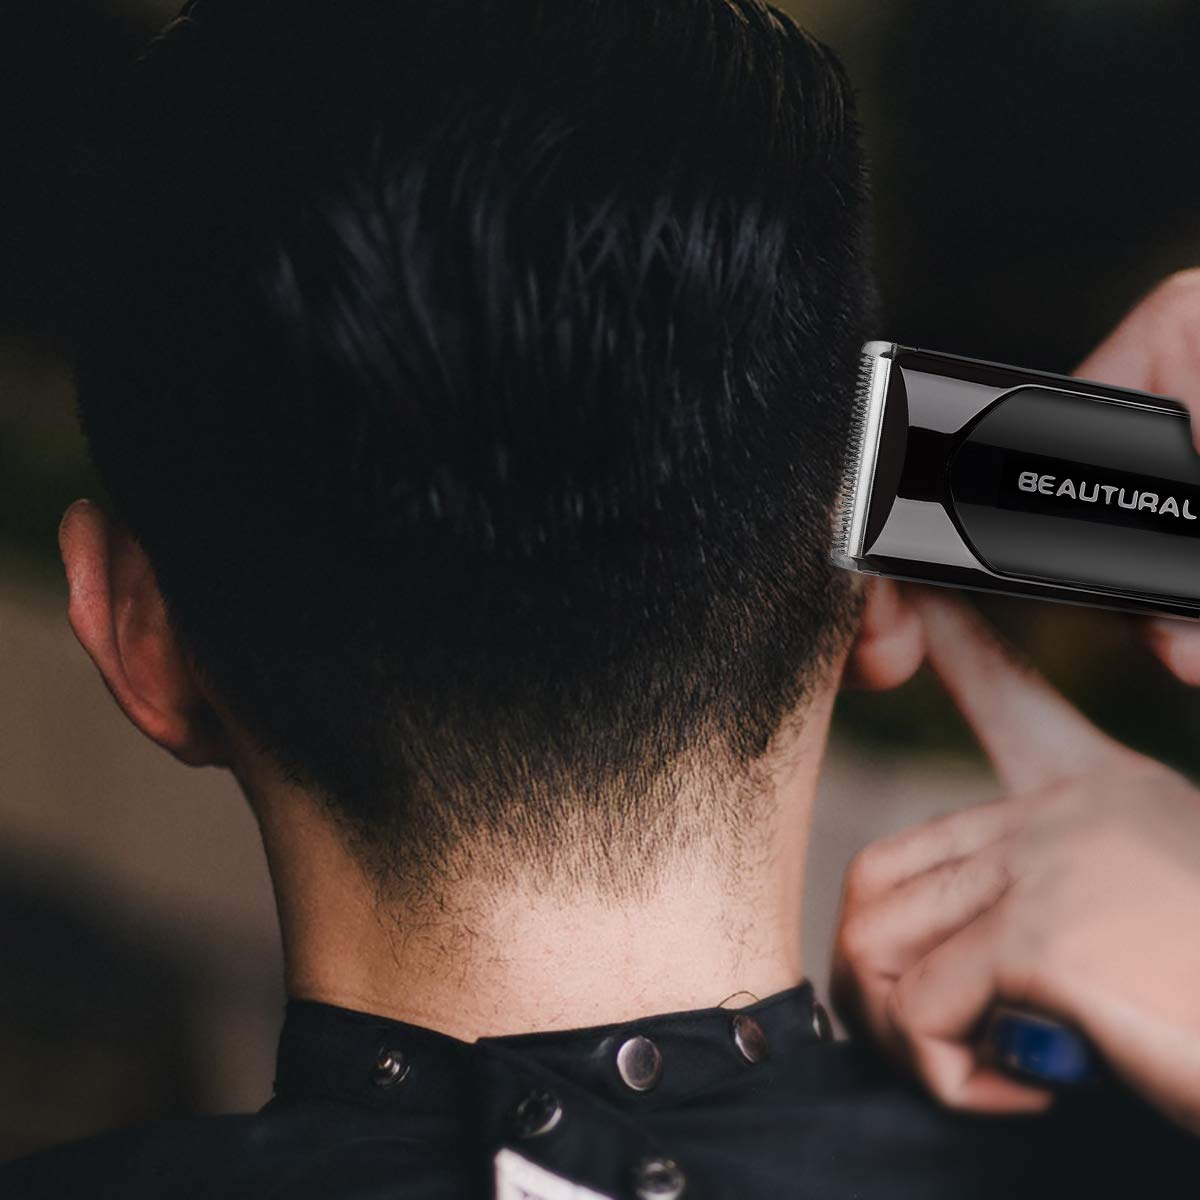 Beautural Professional Cordless Hair Clippers, Heavy Duty Rechargeable Hair Trimmer and Hair Cutting Kit with Charging Base, 6 Guide Combs, and Comb by Beautural (Image #4)